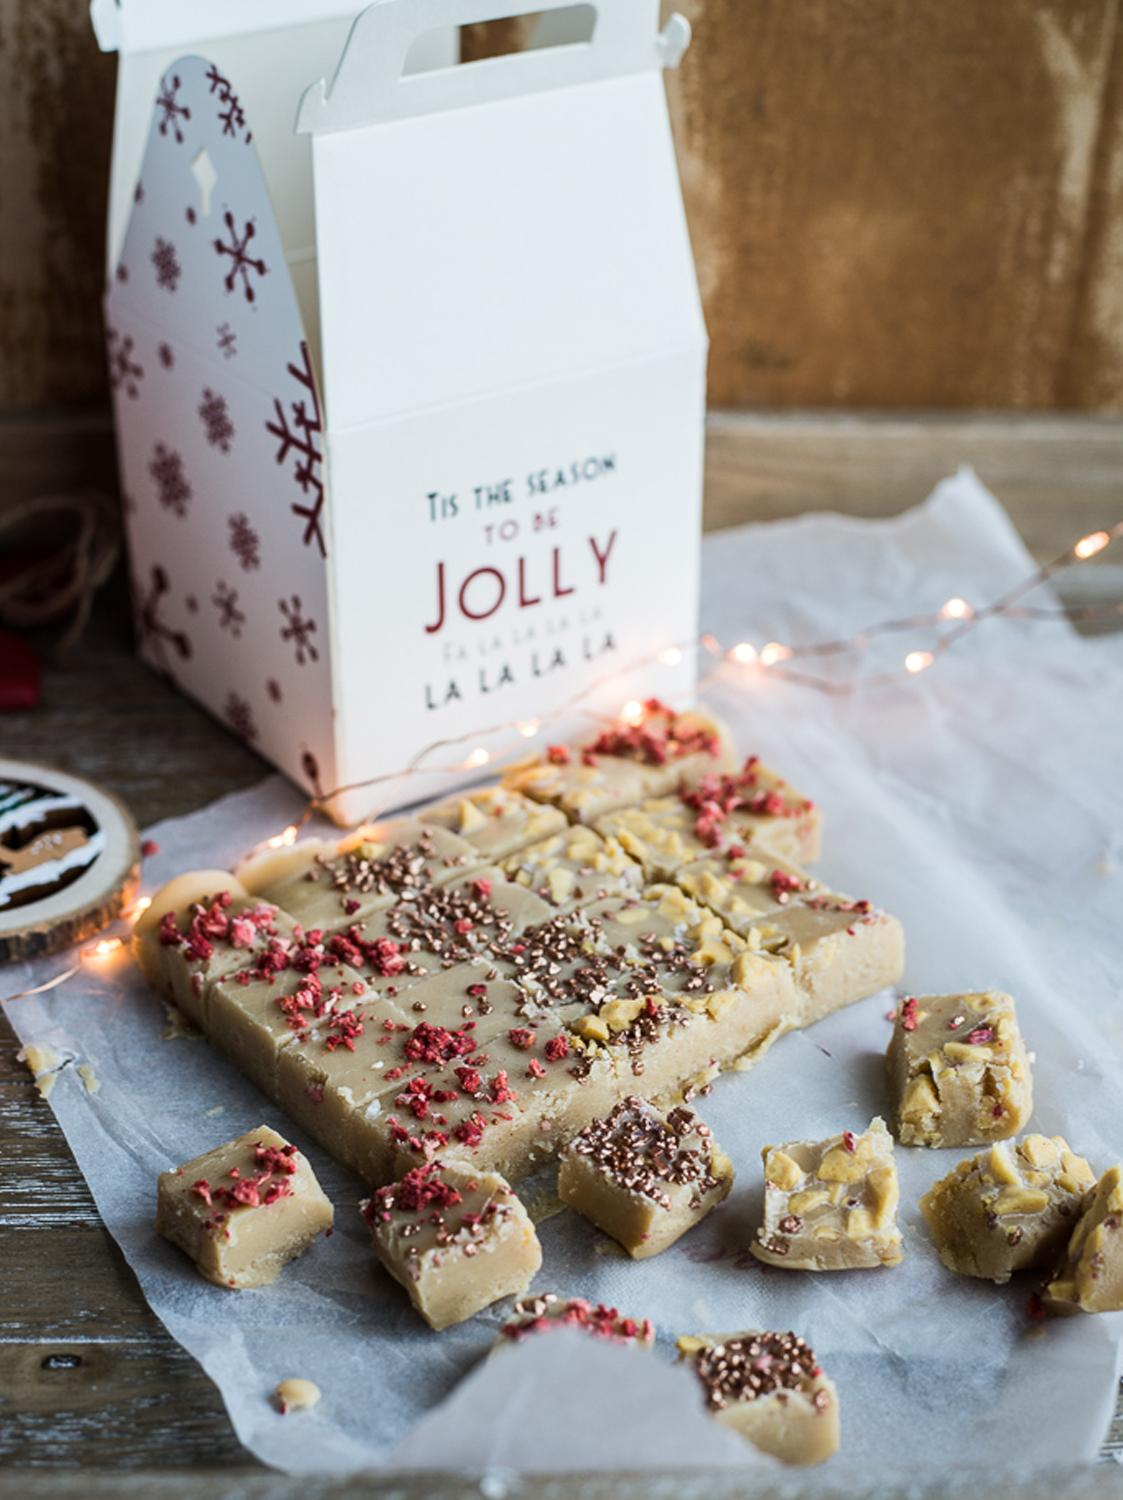 Edible gifts for Christmas | Jamie Oliver